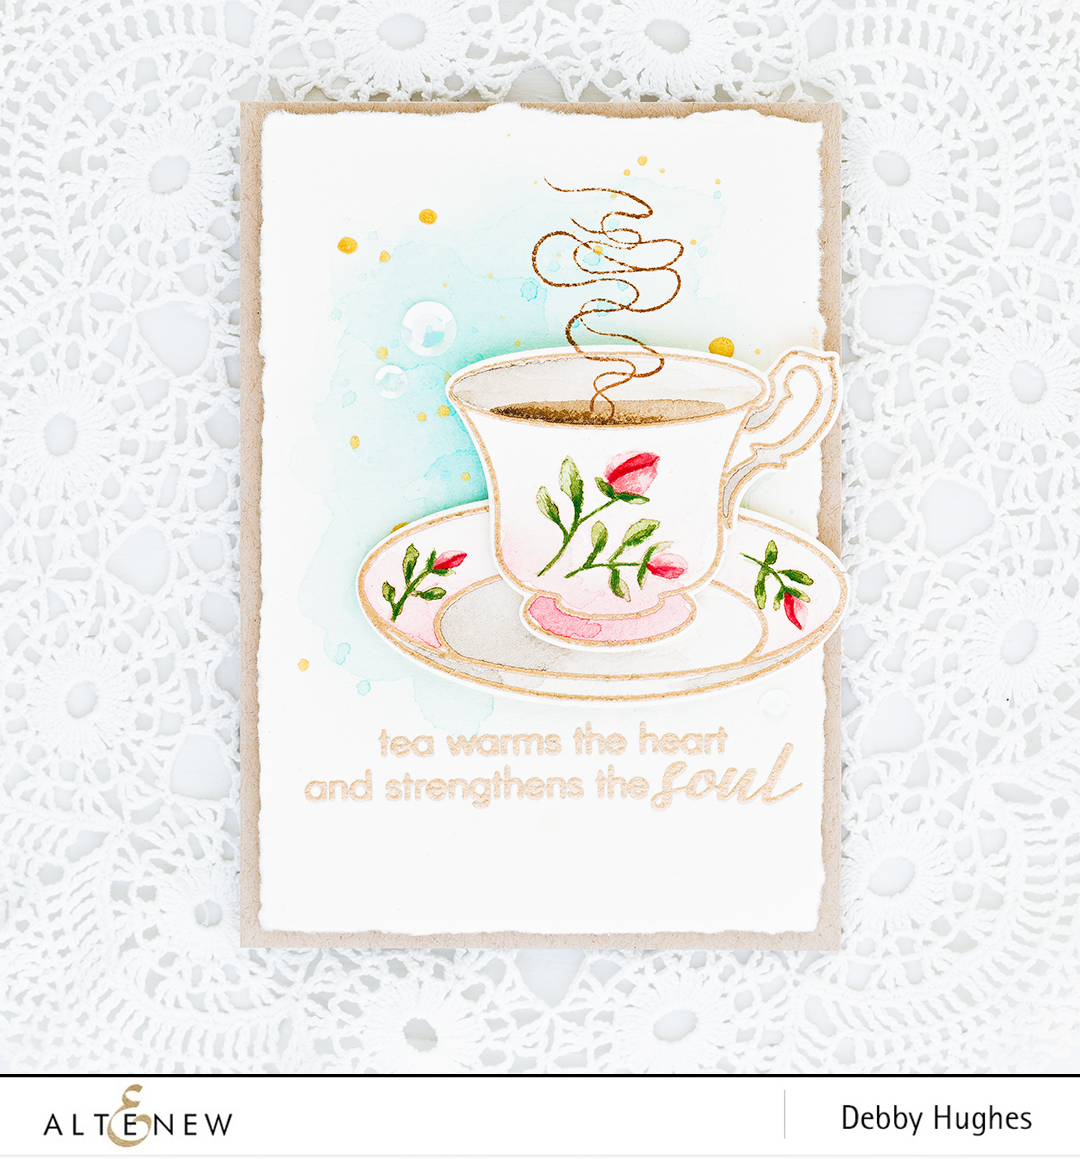 Debby shares a step by step video tutorial on how to heat emboss and watercolor the beautiful Vintage Teacup set. Find out more about this card by clicking on the following link: https://altenewblog.com/2016/11/19/video-vintage-teacup-watercolor/